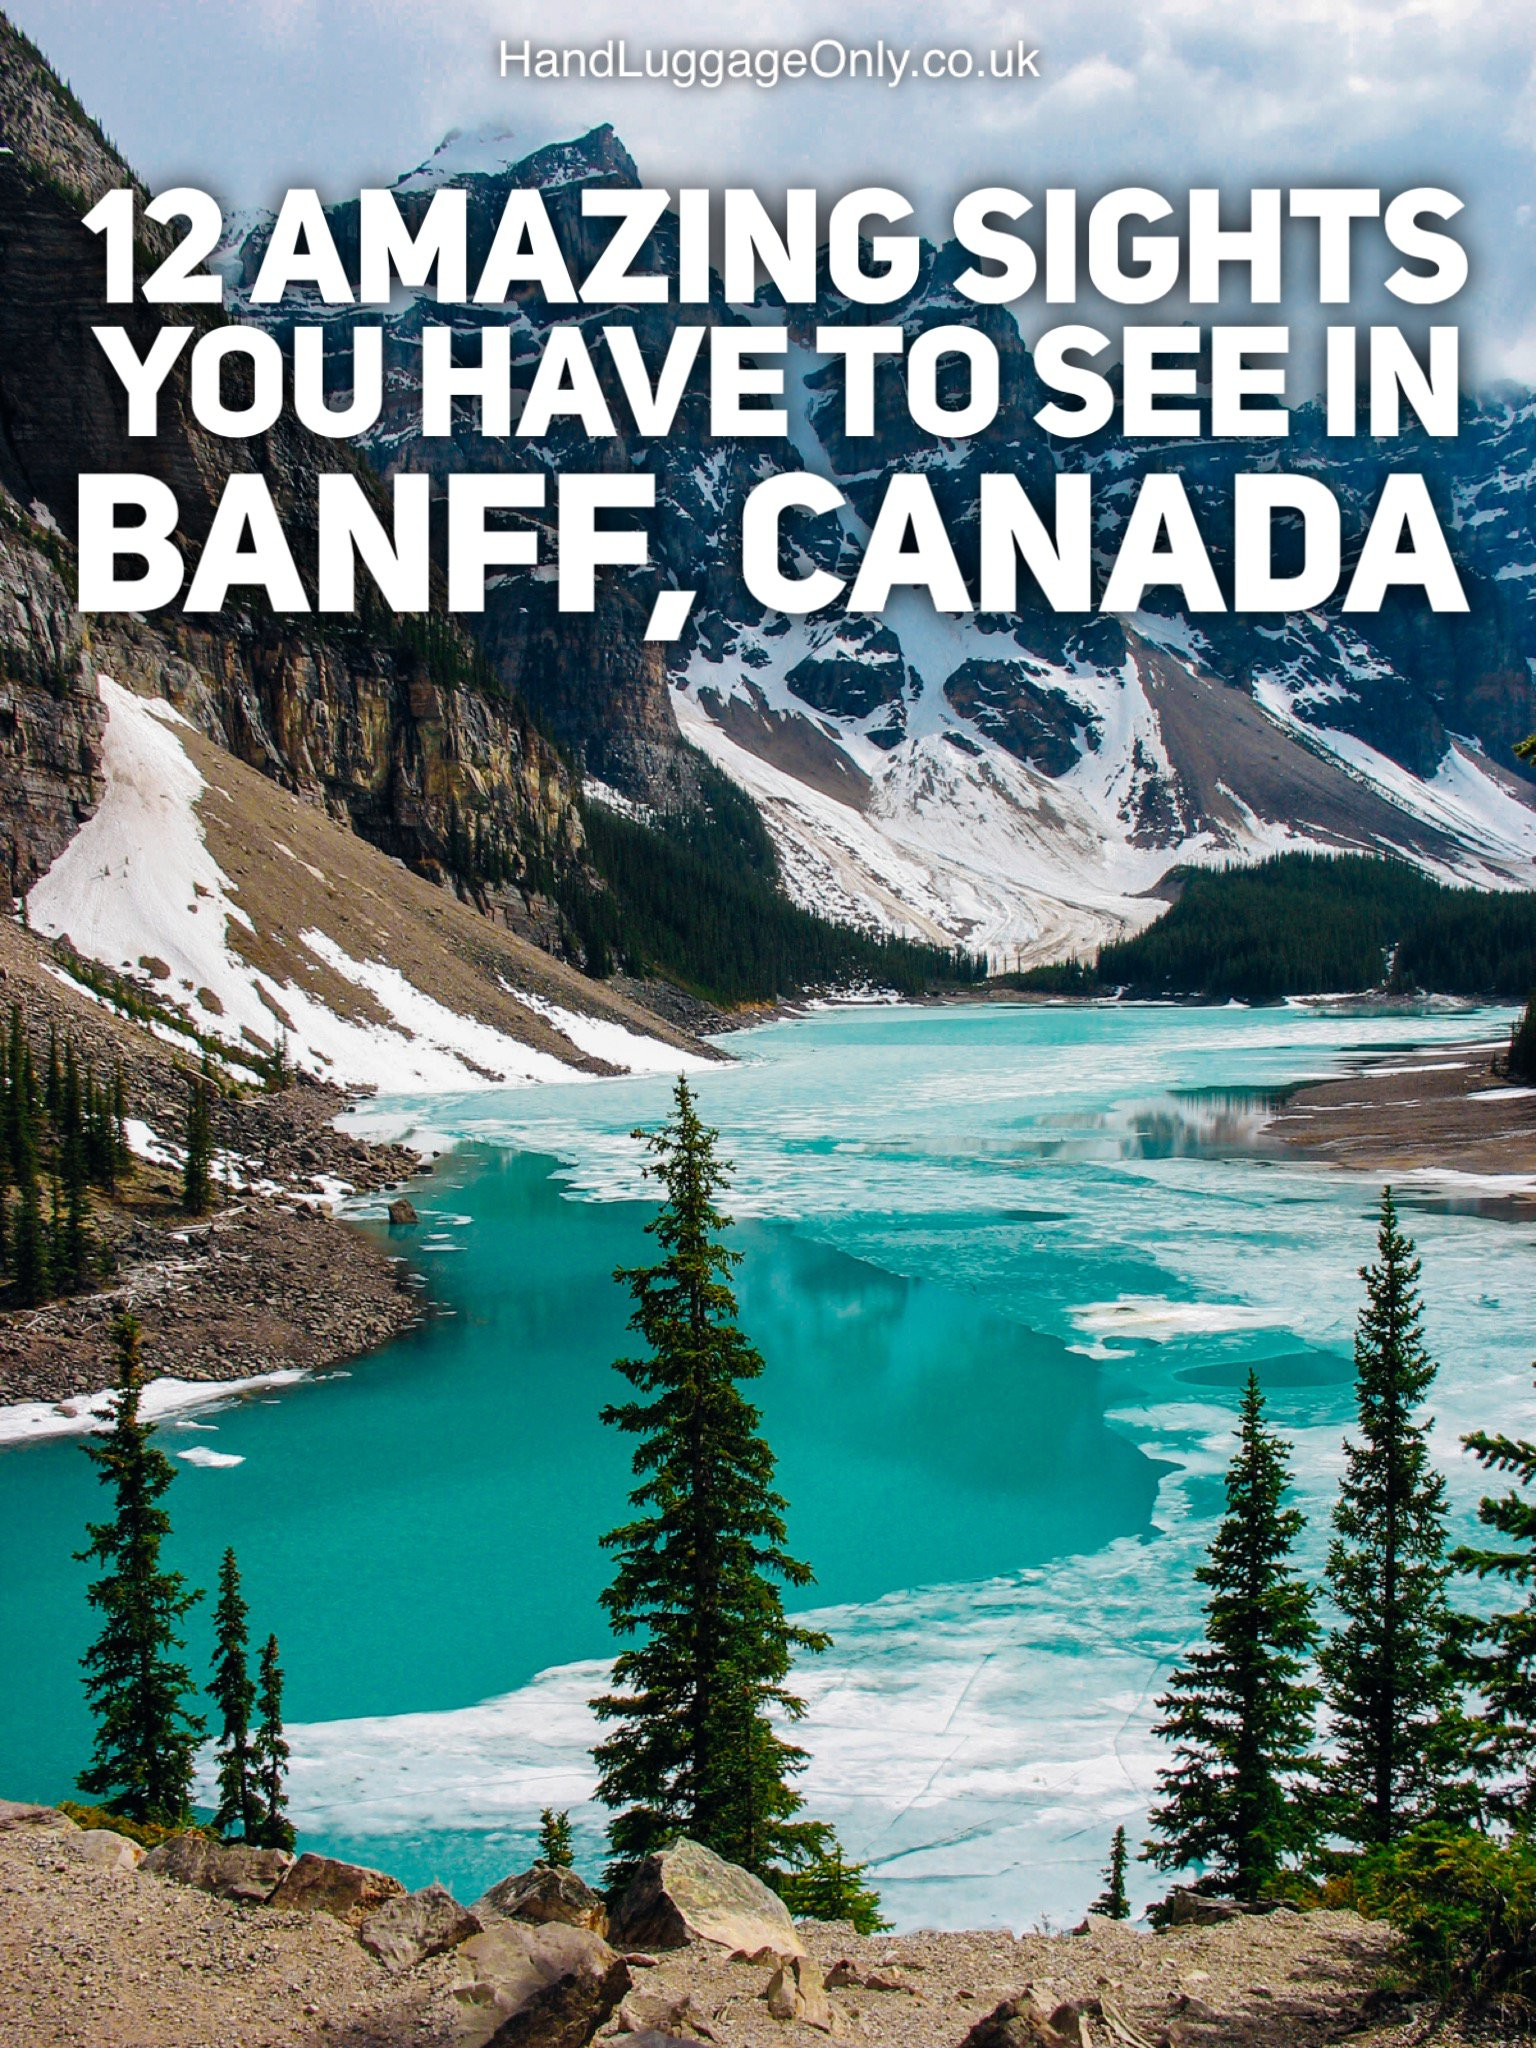 12 Amazing Sights You Have To See In Banff, Canada (1)